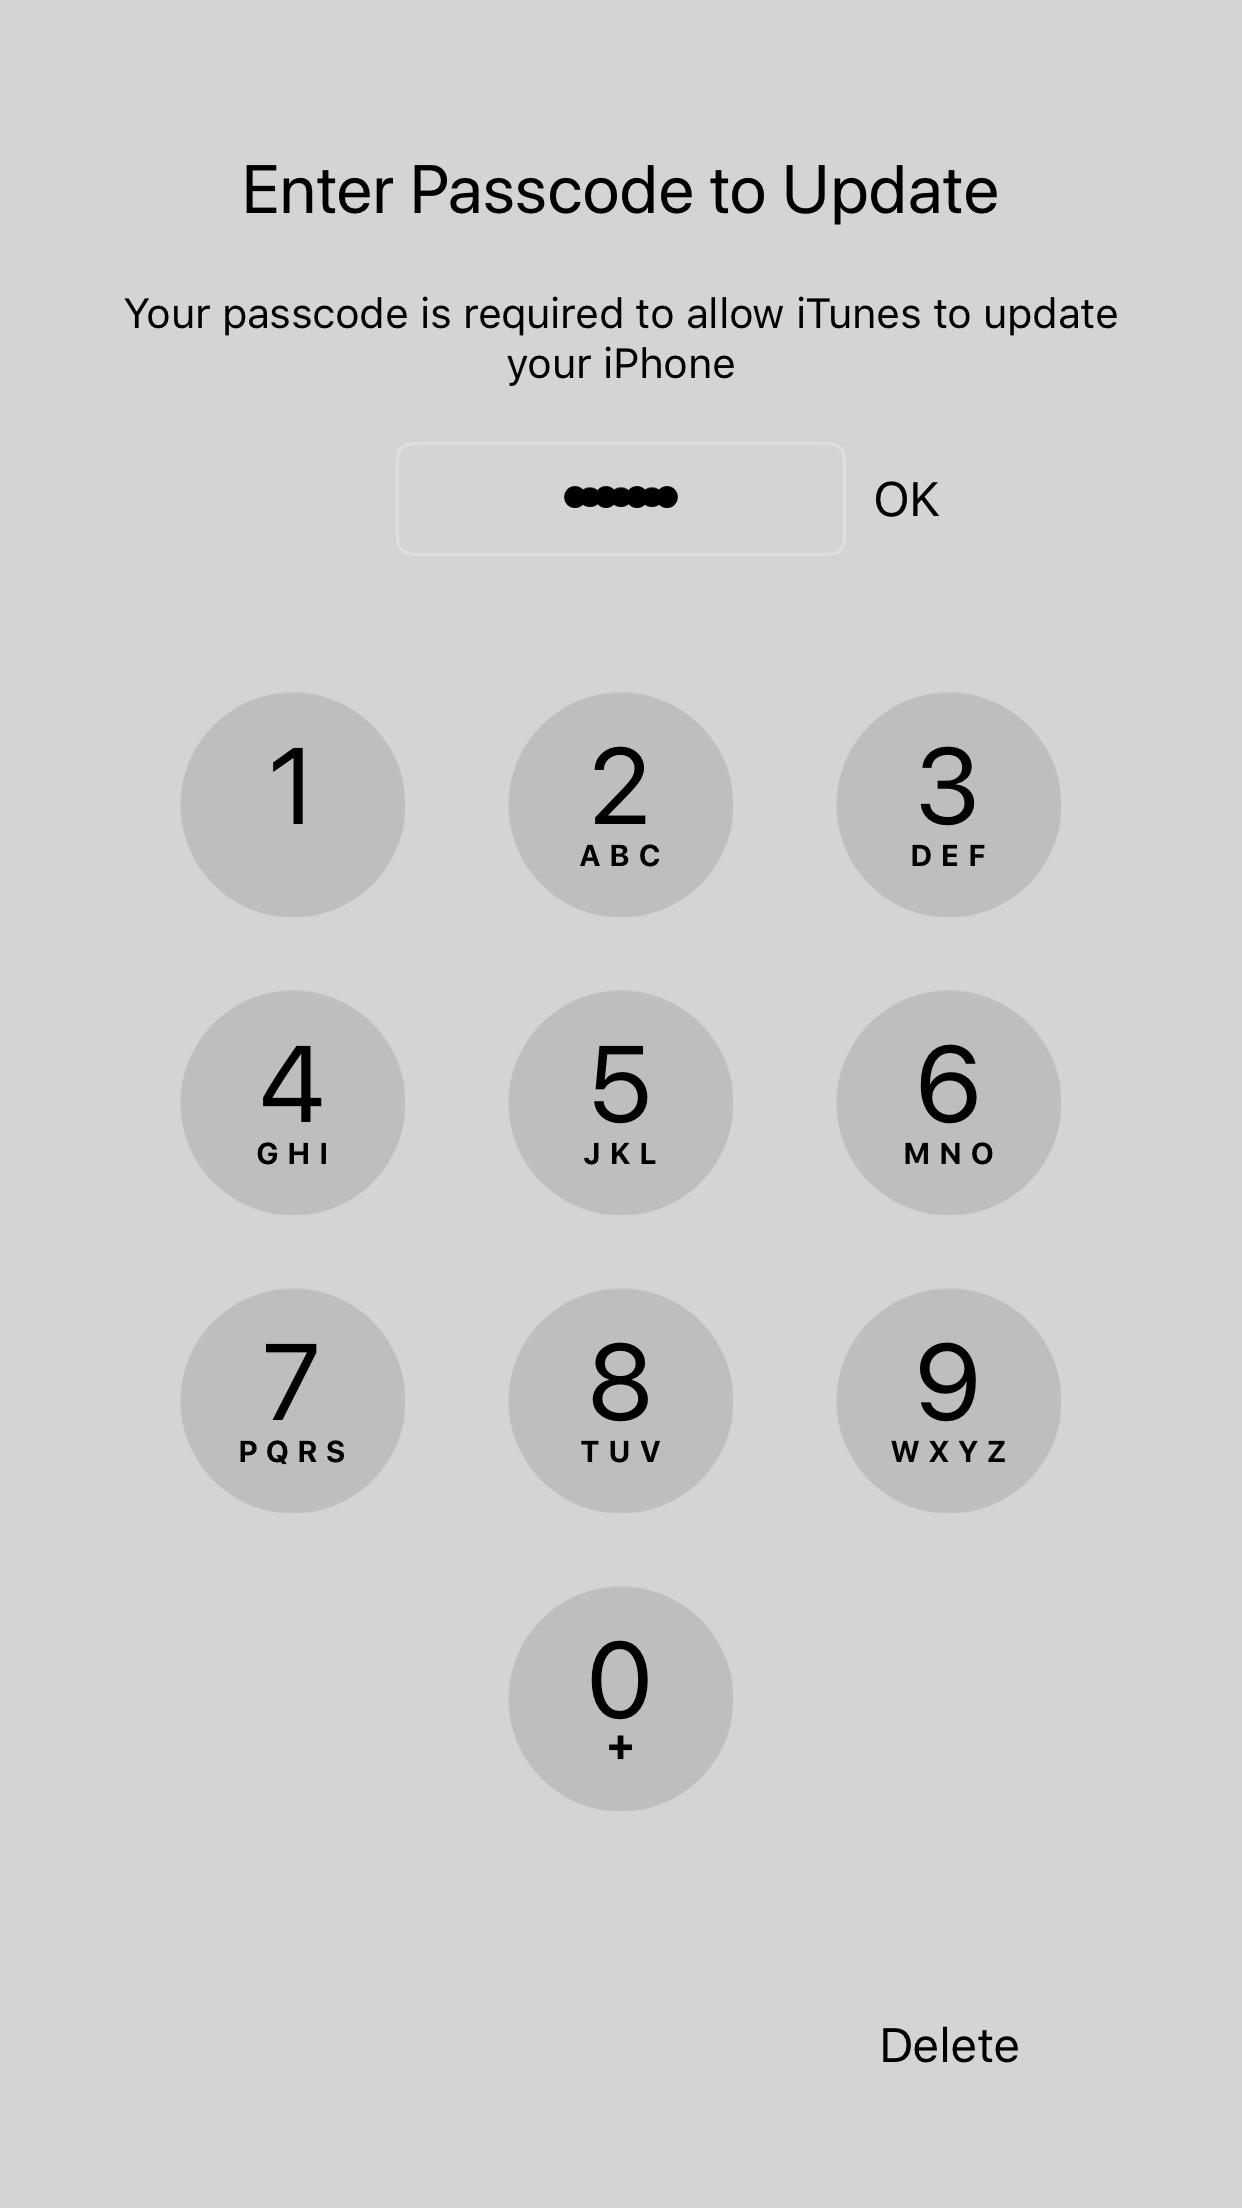 Bug Extra Dots After Inputting The 4th Number On A 5